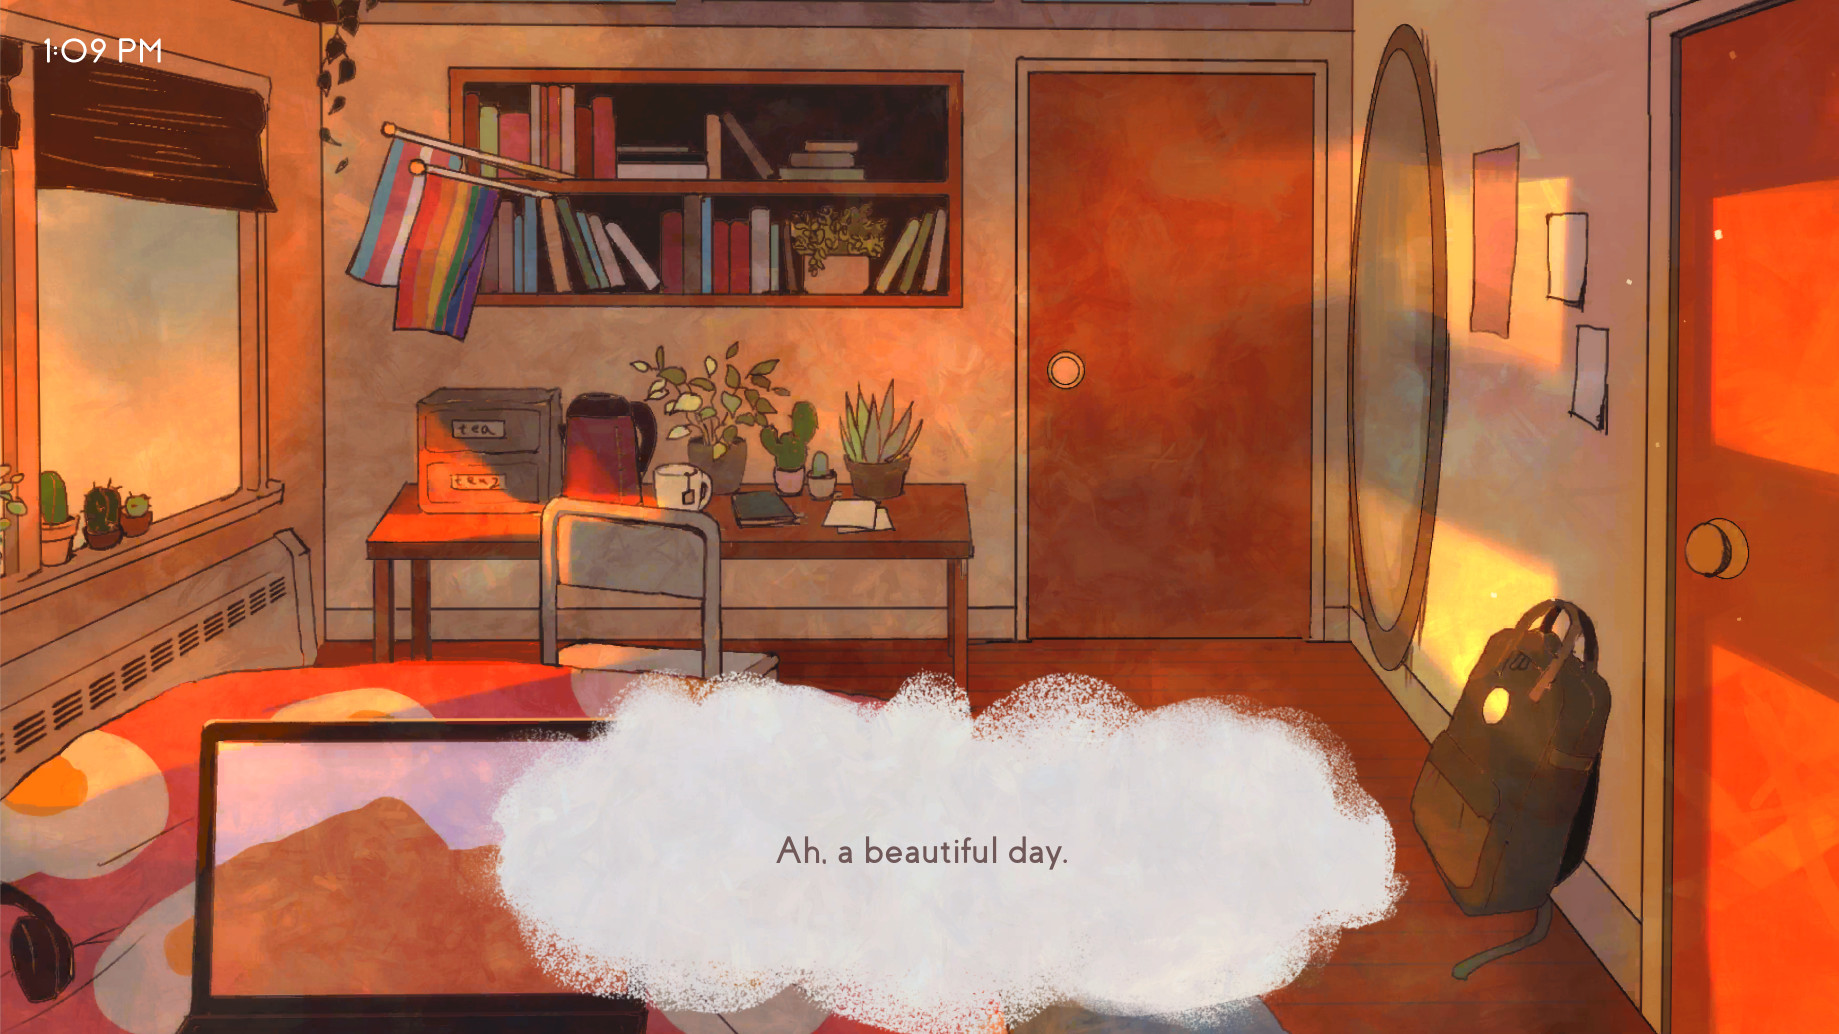 A picture of a bedroom. On a shelf there is a rainbow flag and a trans flag. A dialogue cloud at the bottom says 'Ah, a beautiful day.'